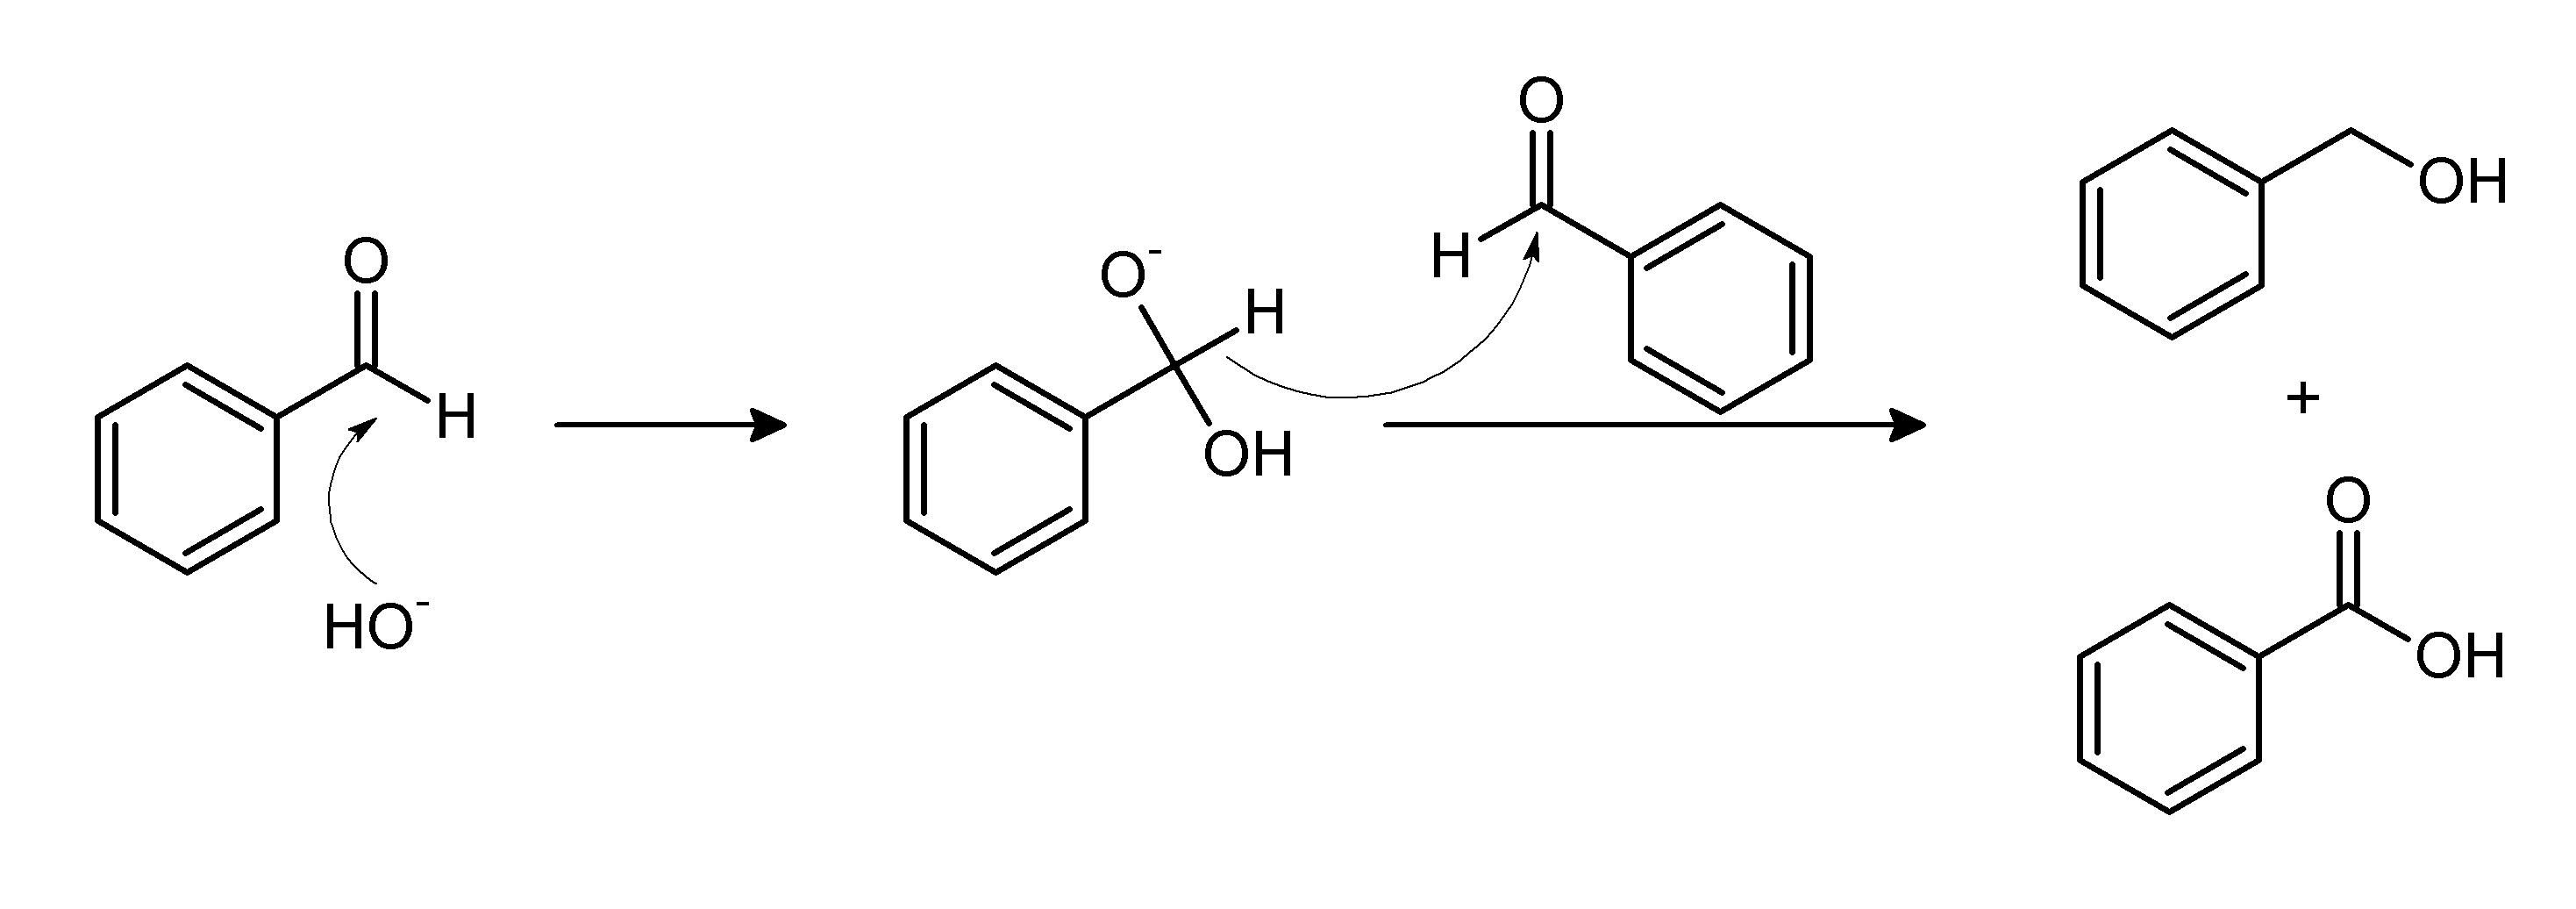 File:Benzaldehyde Cannizzaro reaction.png - Wikipedia, the free ...